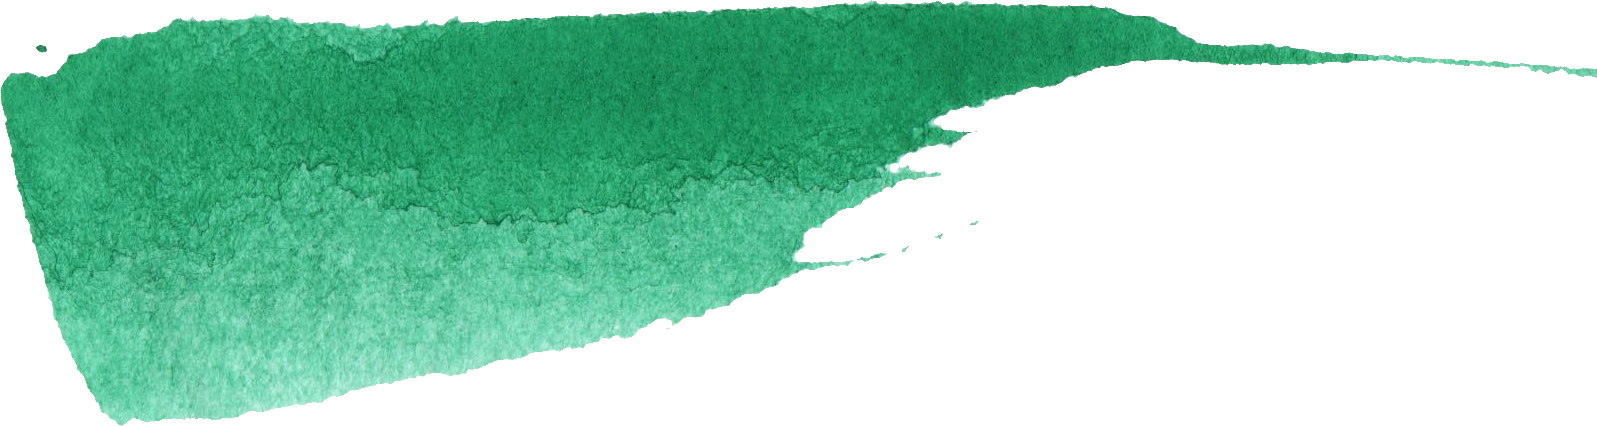 Green brush png. Watercolor stroke banner